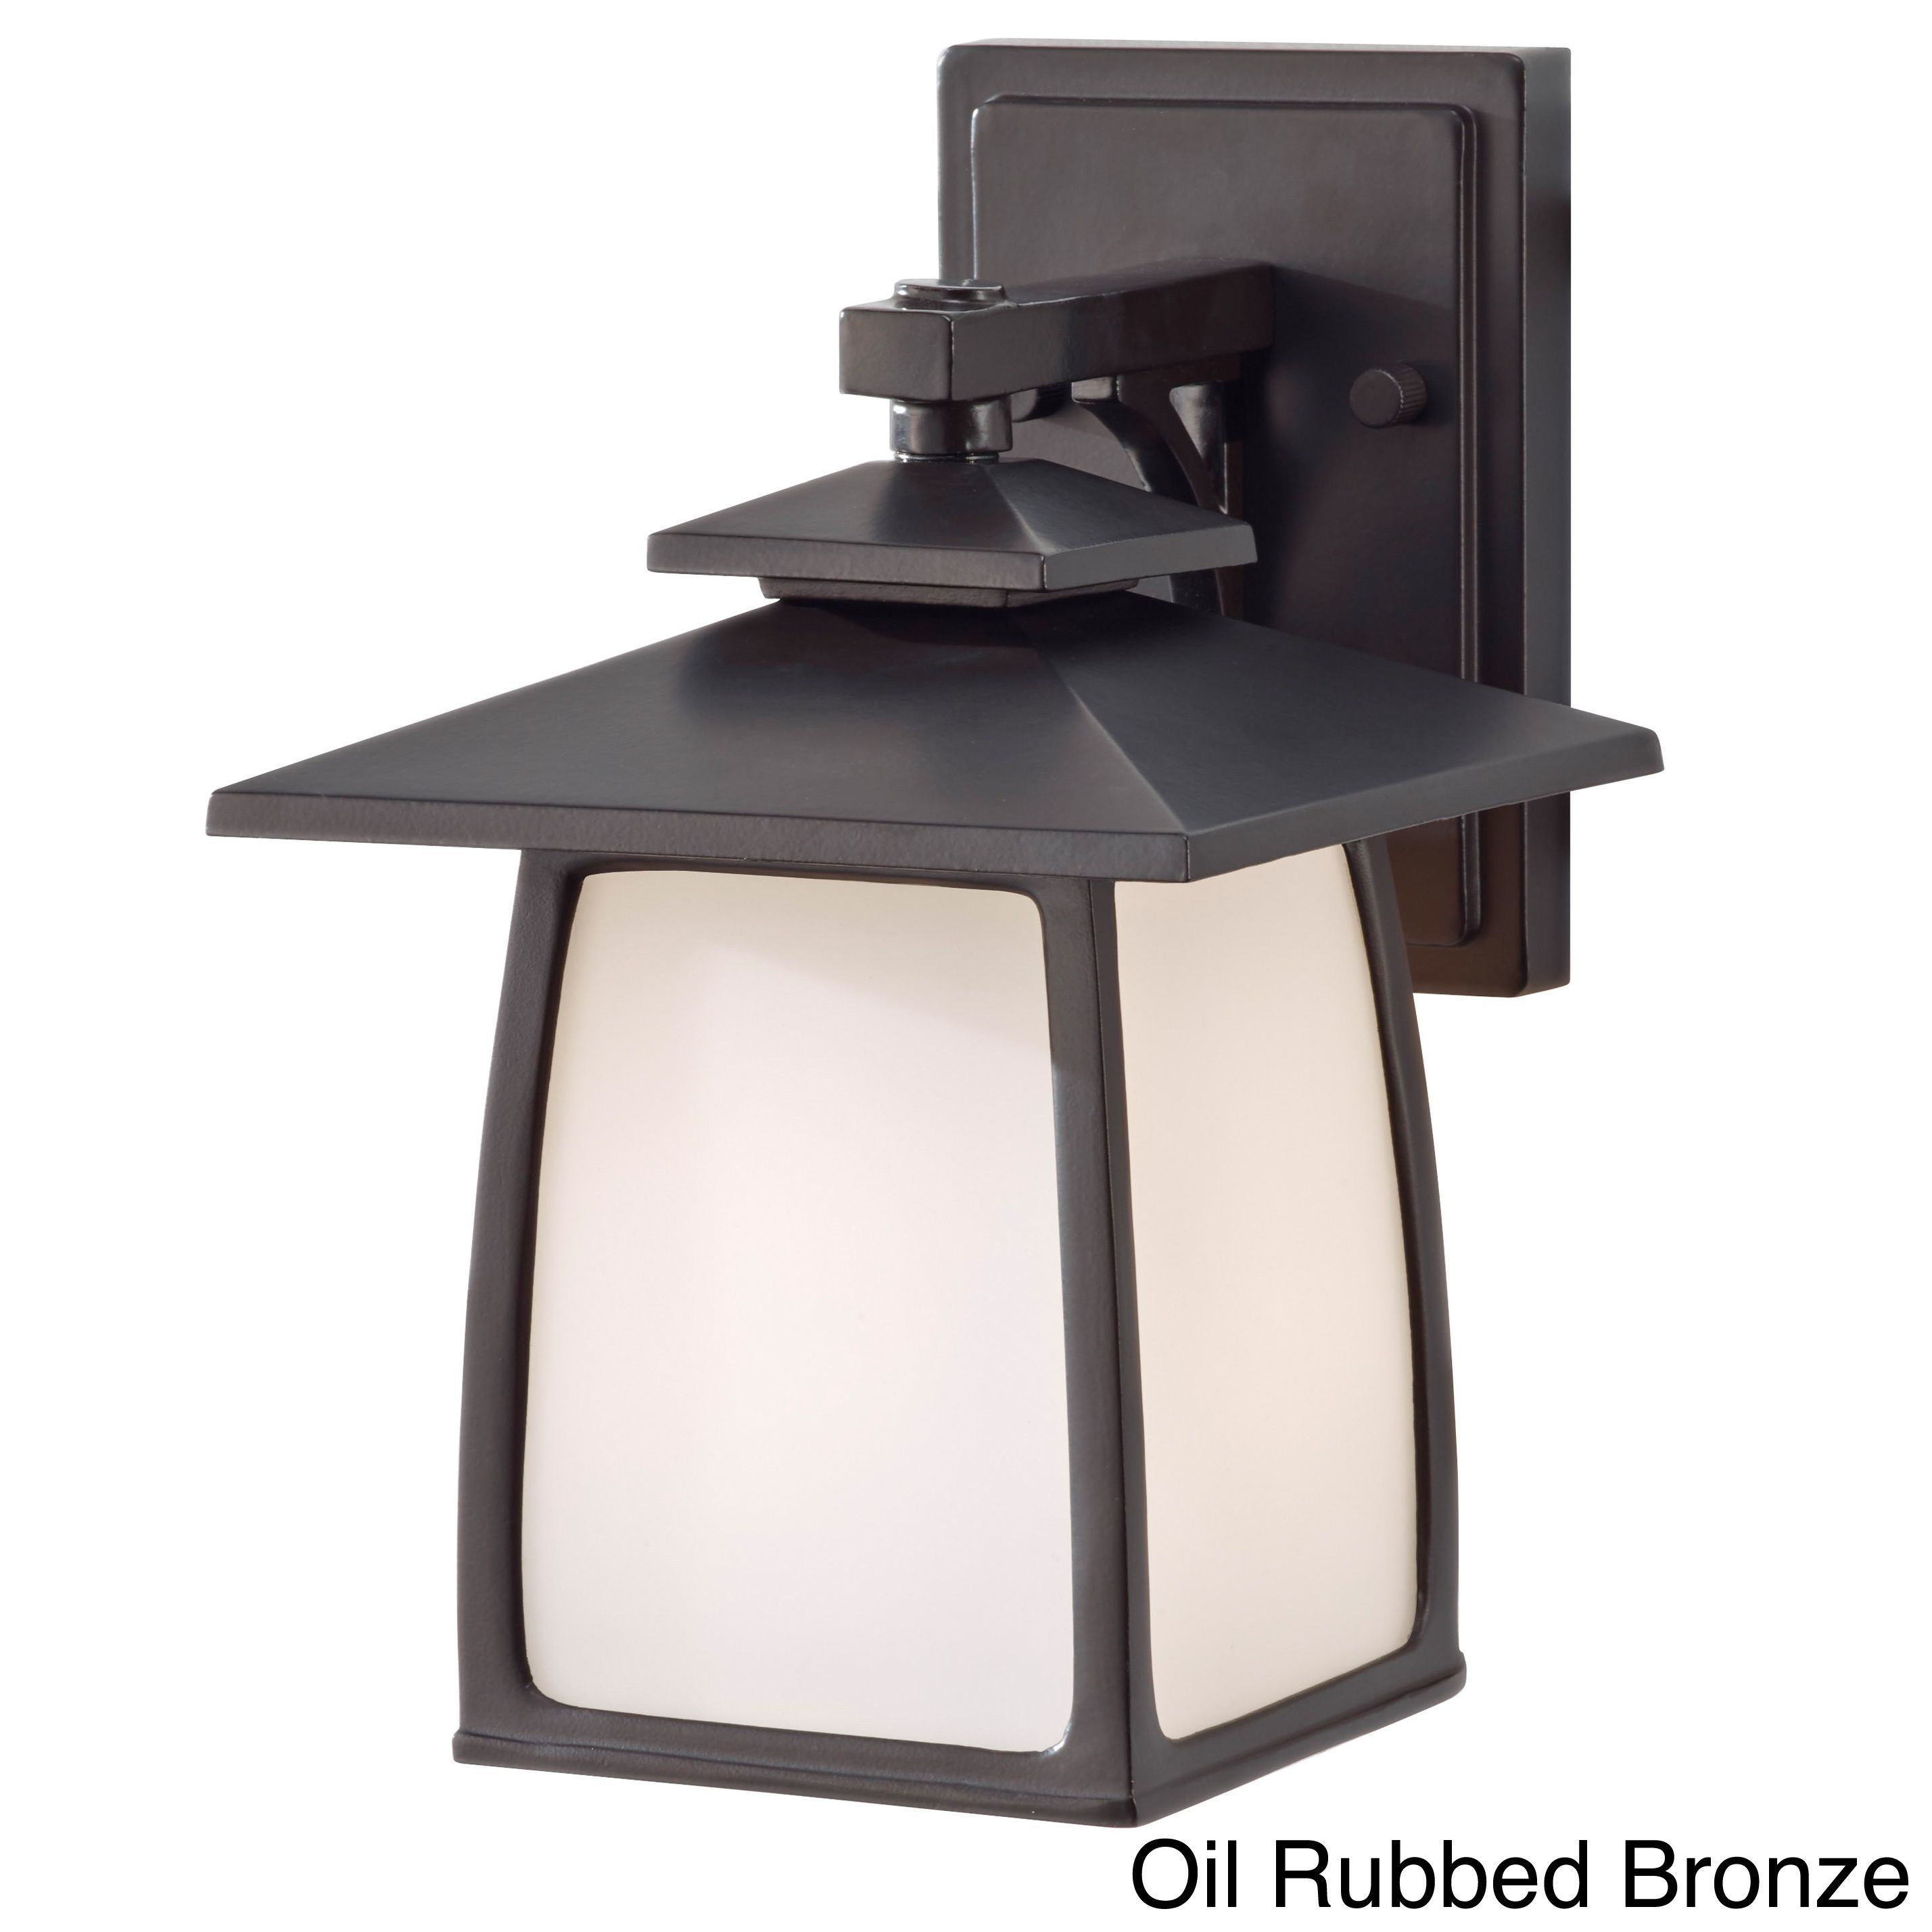 Uncategorized Asian Inspired Lighting add an asian inspired lighting element to any outdoor space with this unique wright house lantern available in elegant oil rubbed